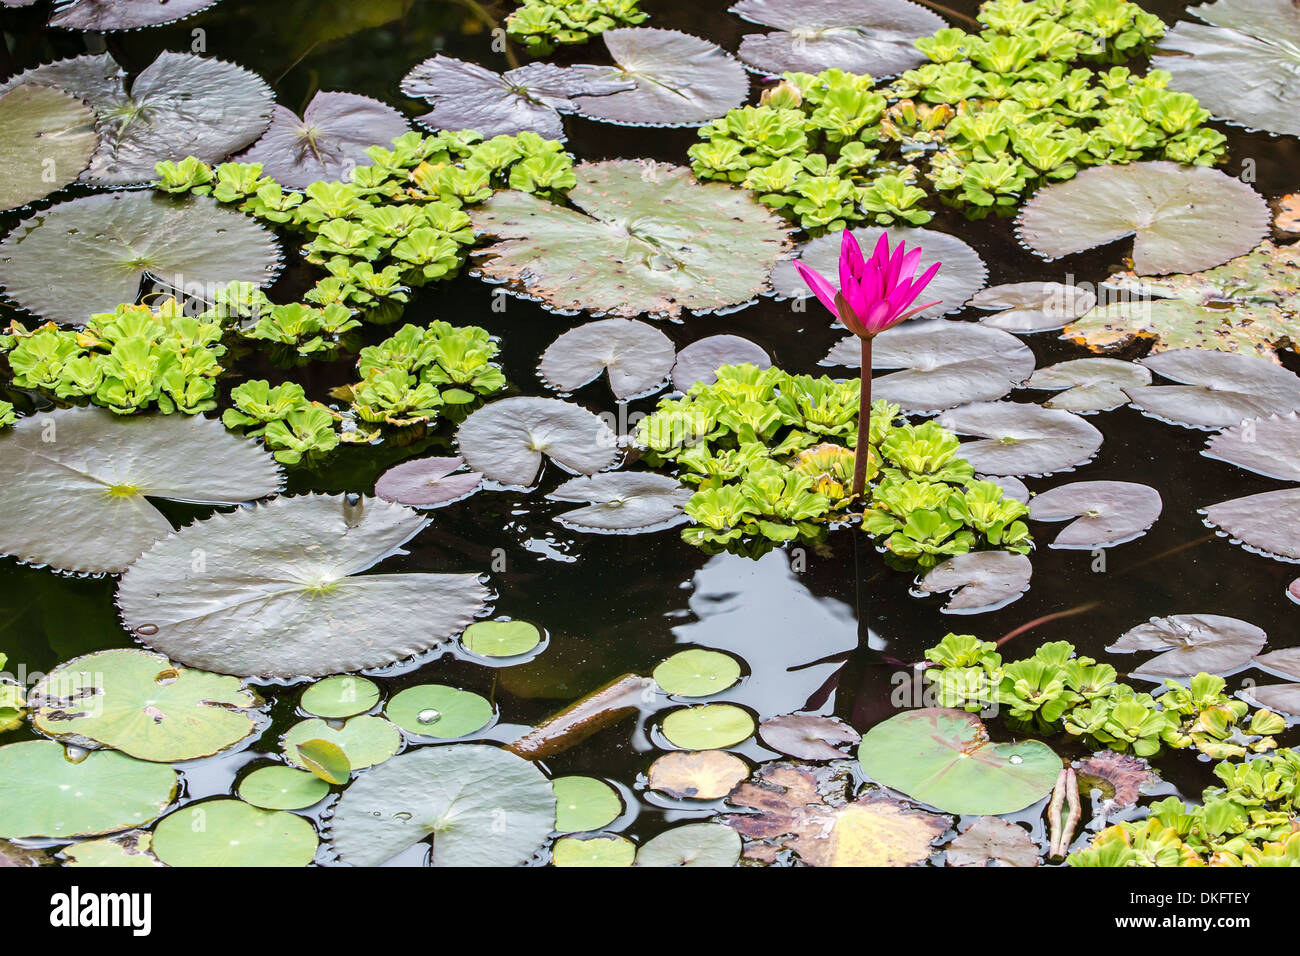 Water-lilies, Nymphaea spp, in Phnom Penh, along the Mekong River, Cambodia, Indochina, Southeast Asia, Asia - Stock Image